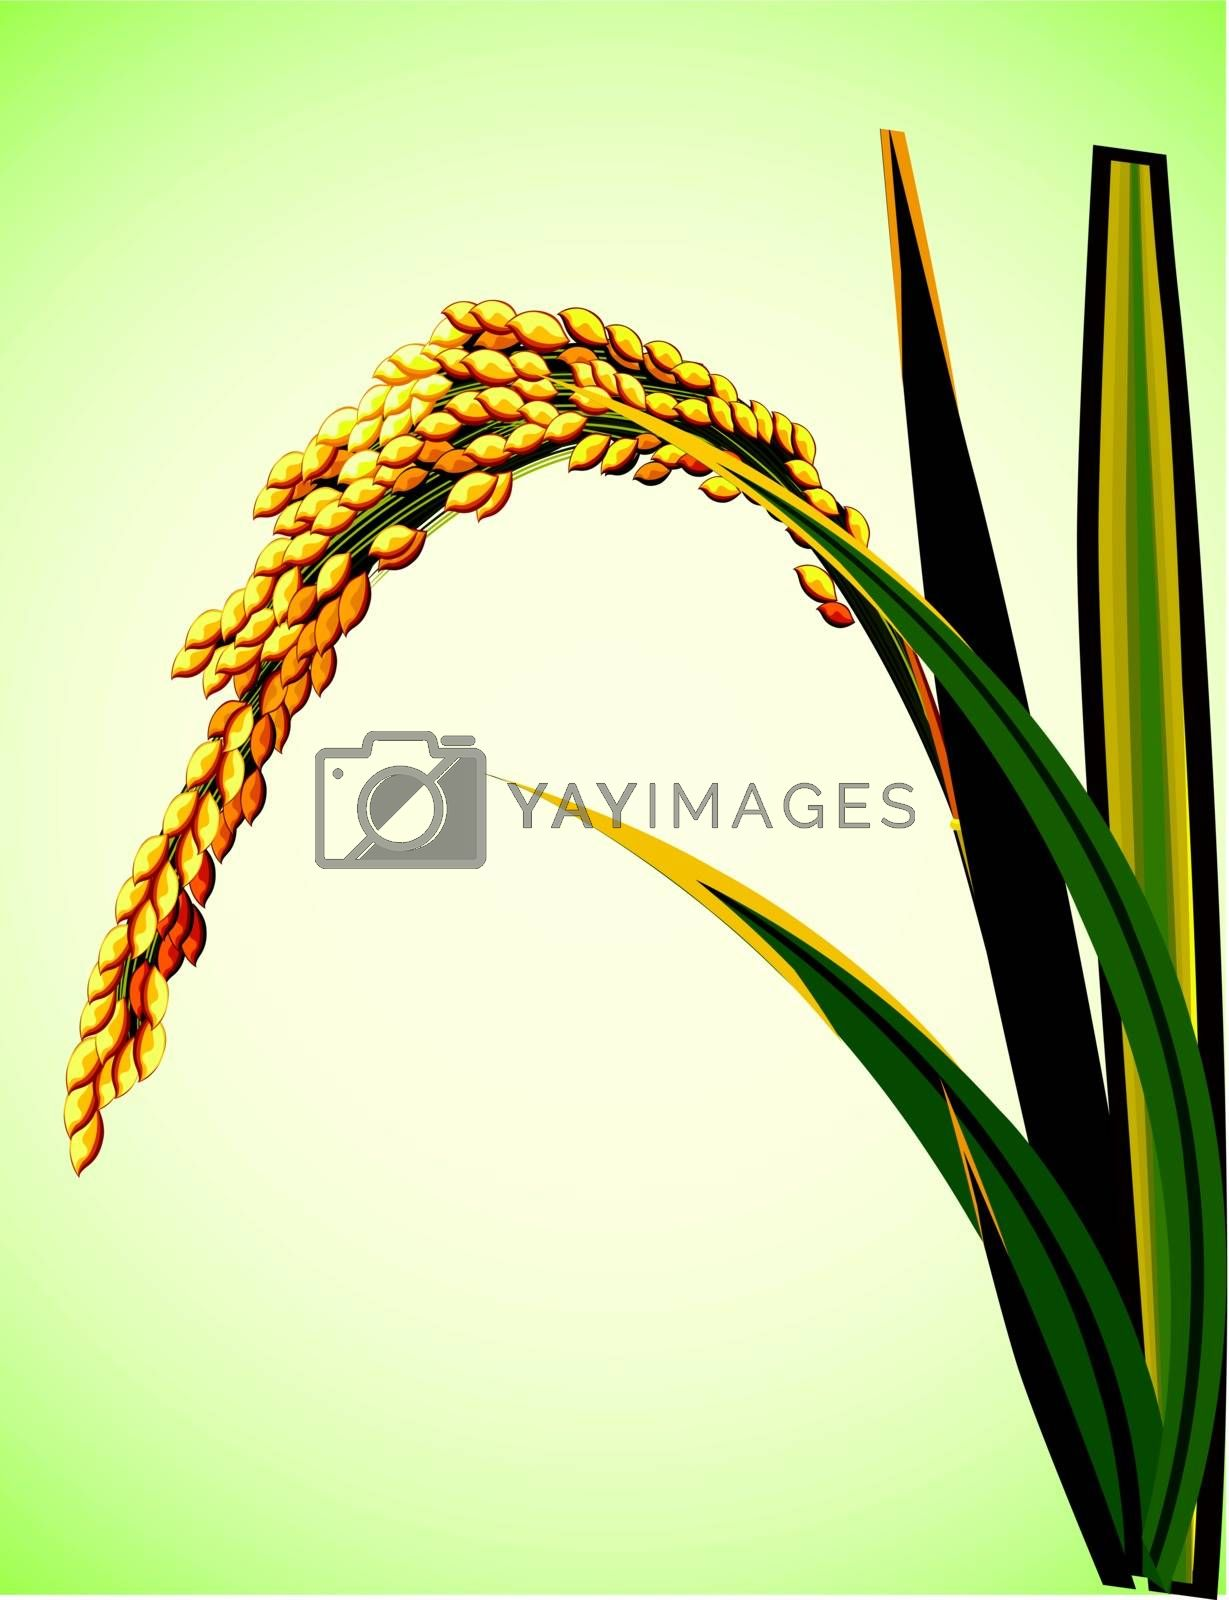 Illustration of spike rice in Asia